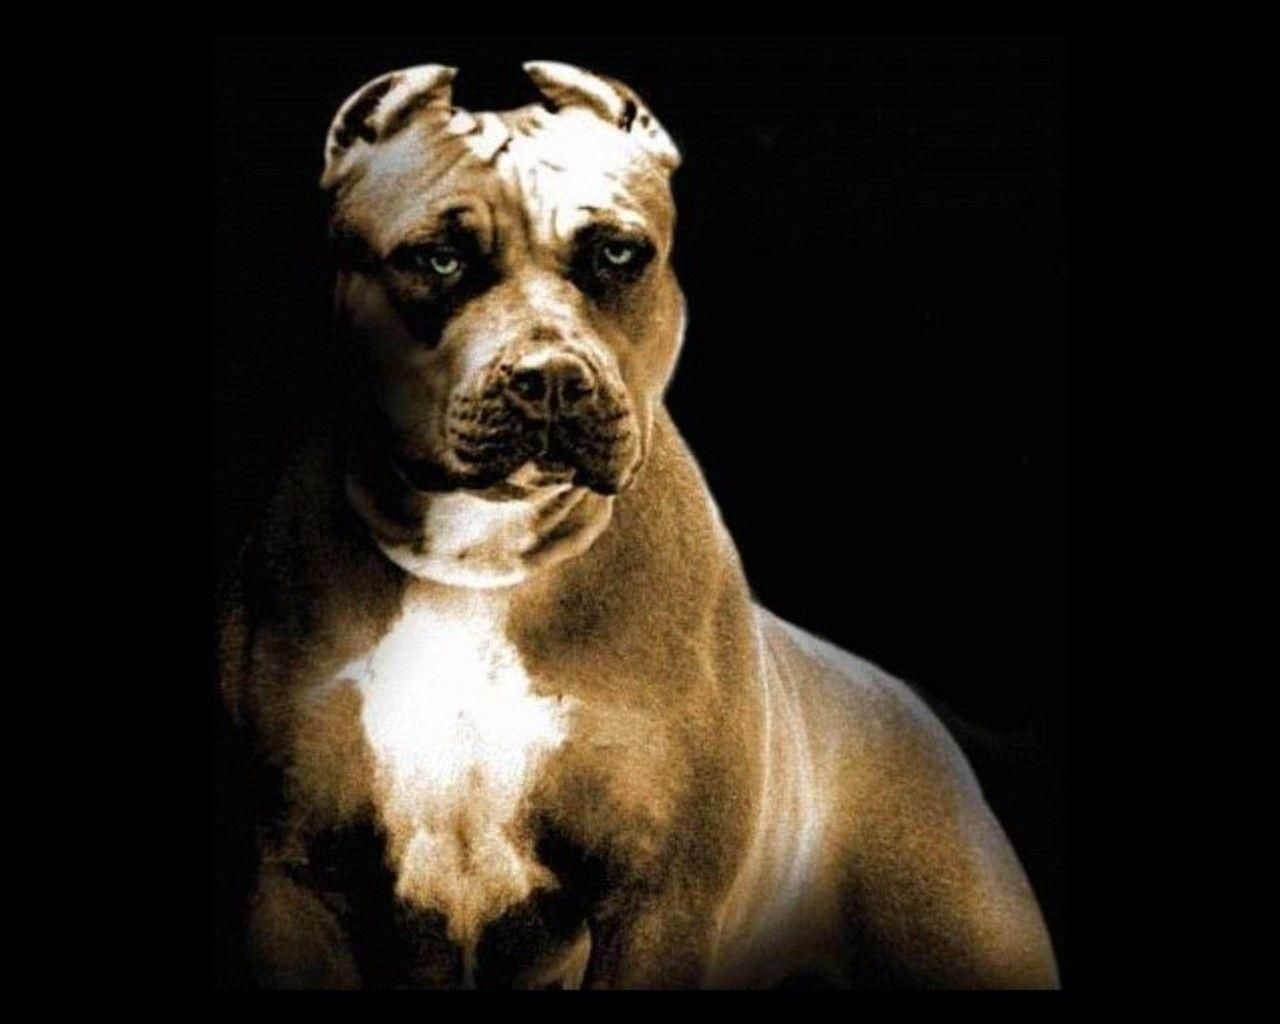 Pitbull Dog New Wallpapers Pitbull Dog Pictures Free Download